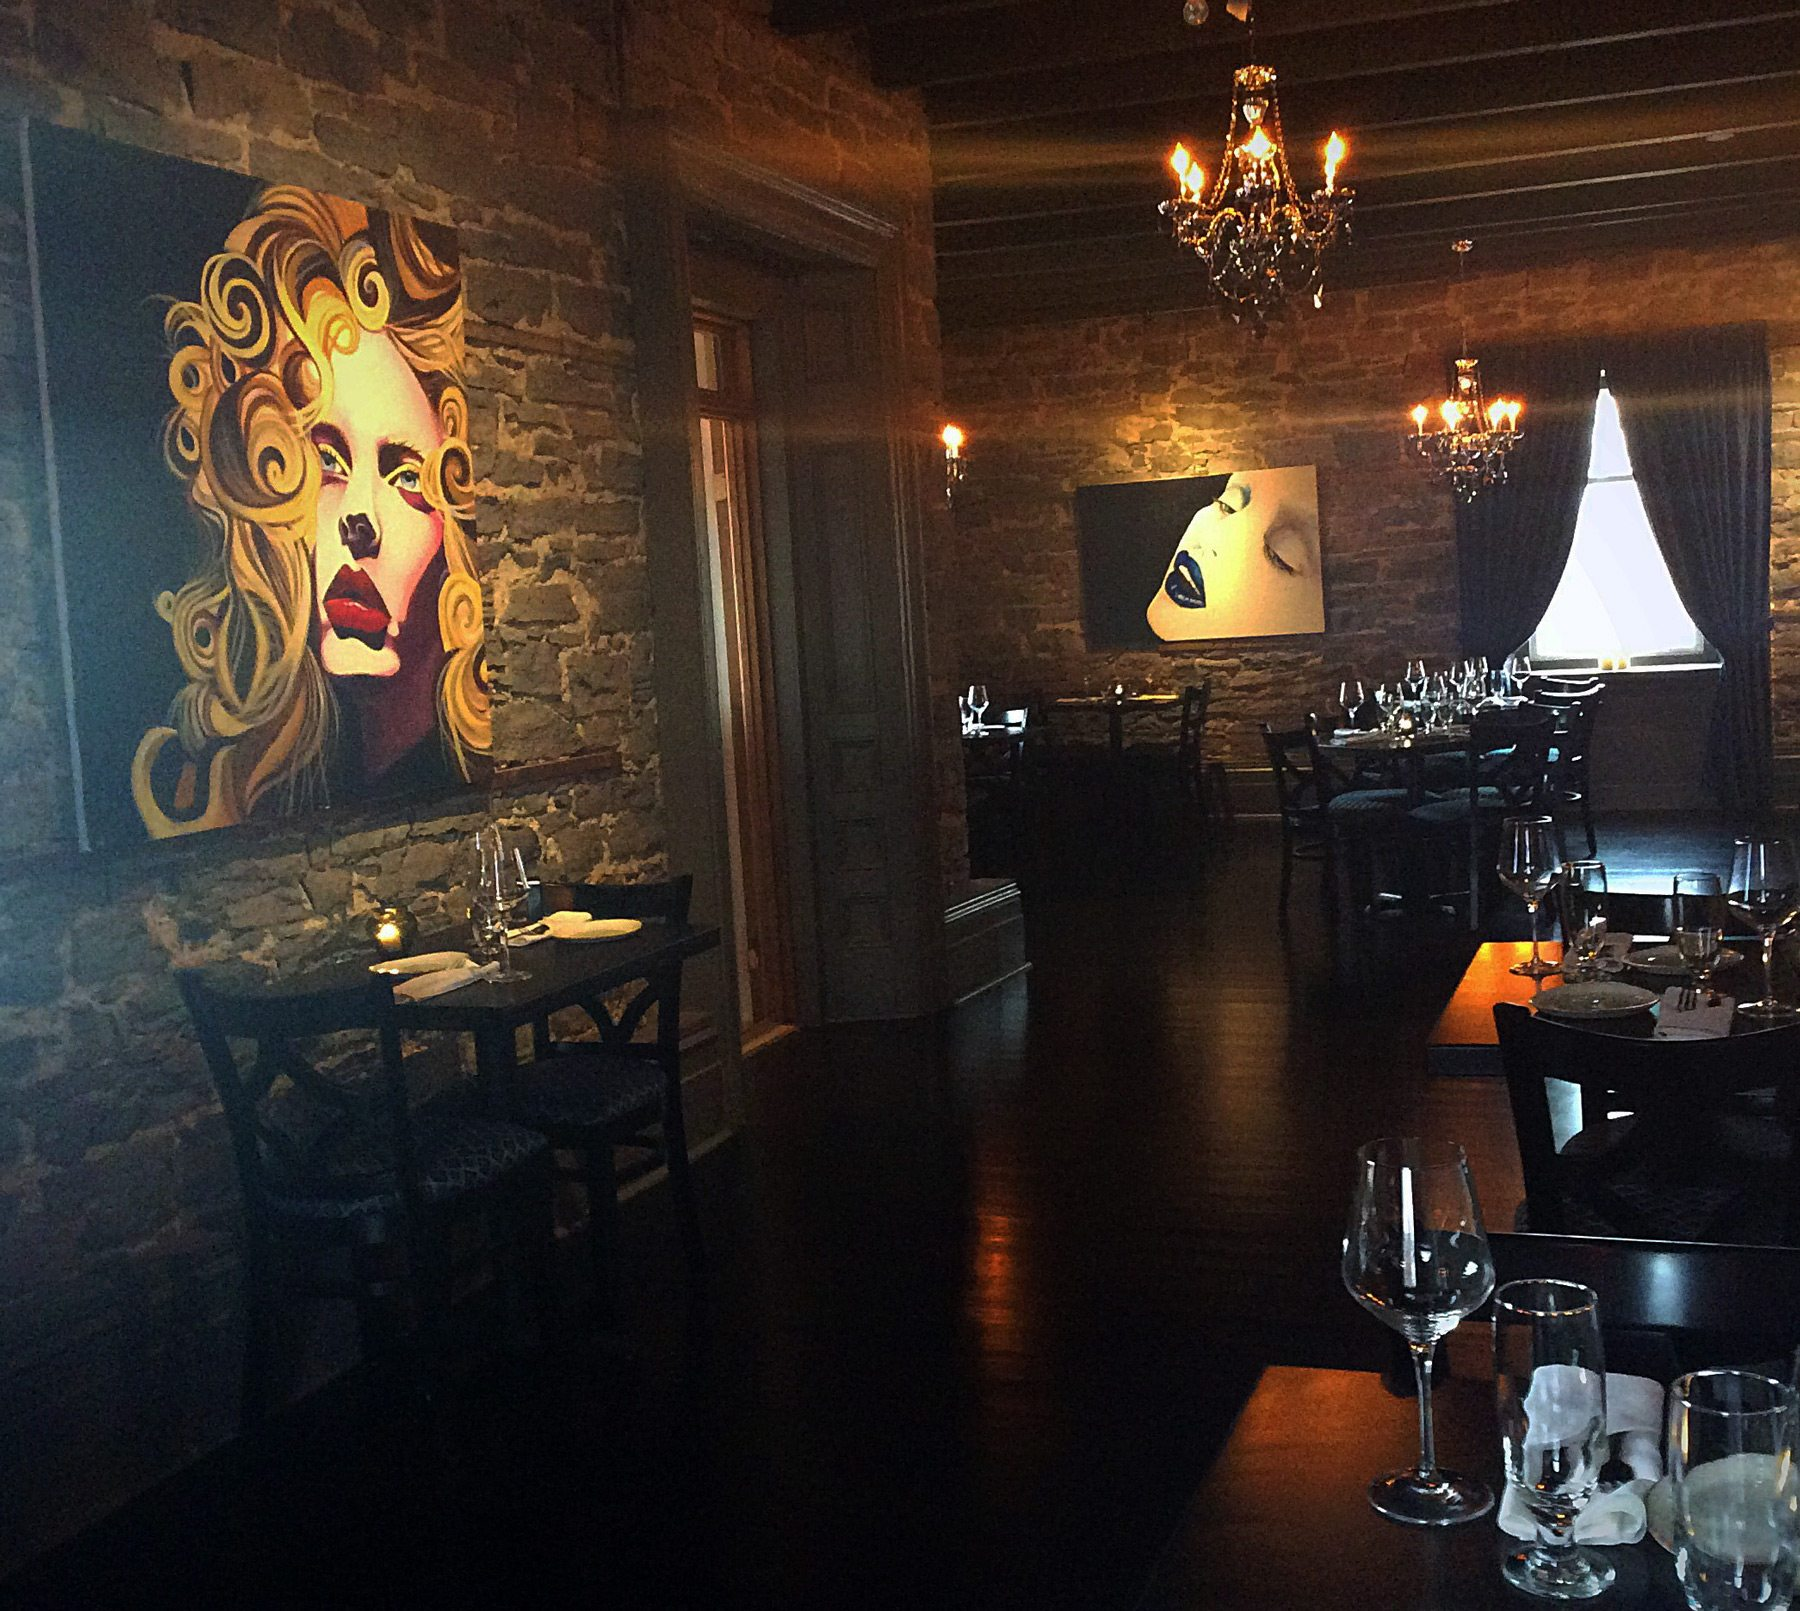 Original stone walls, pretty chandeliers, and commissioned pop-art portraits make for a unique dining space at La Maison Conroy